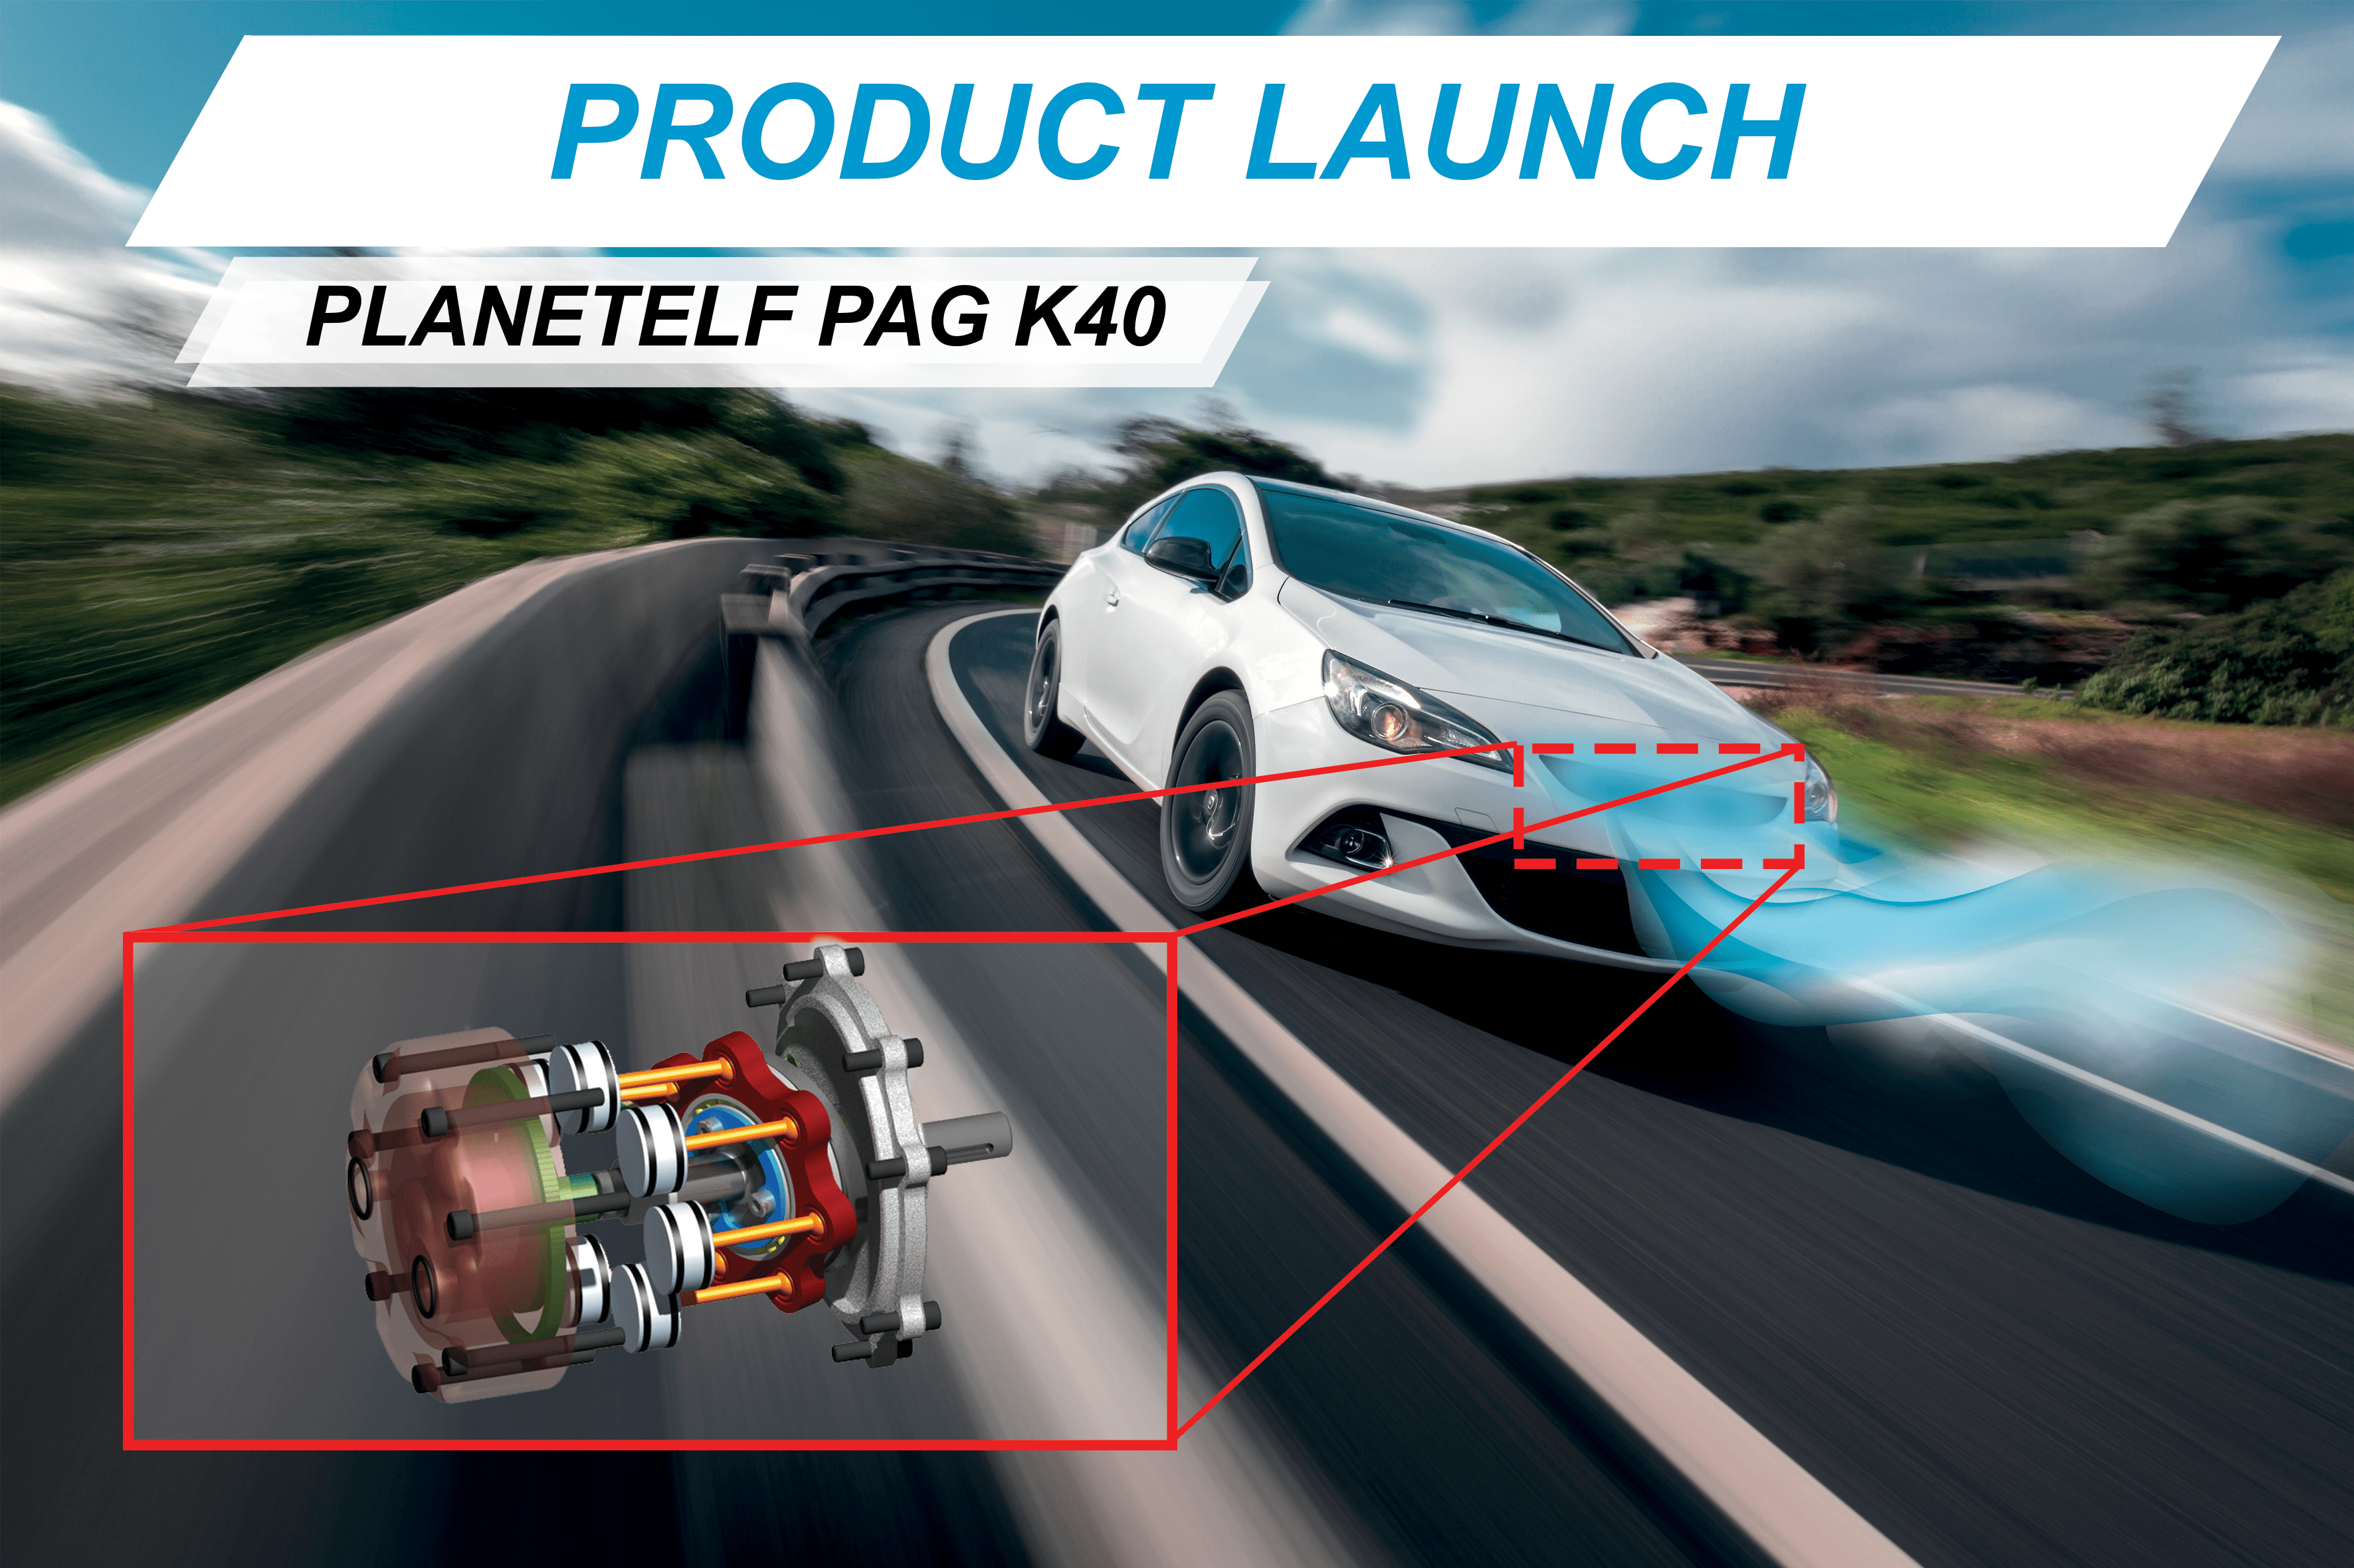 Planetelf PAG K 40 lubricant